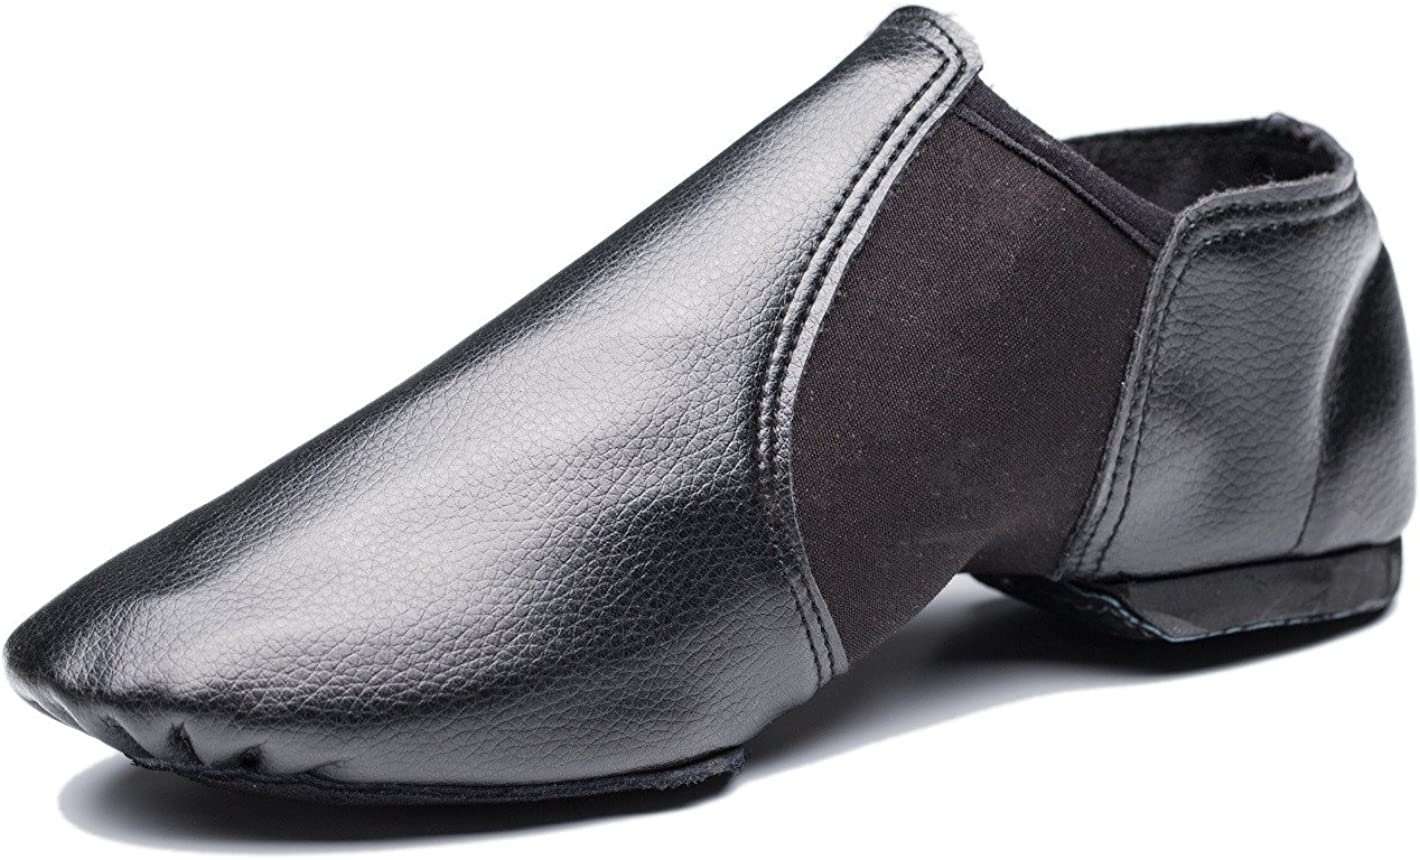 Cheapdancing Breathable Practice Jazz Shoes Soft-Soled Black Leather Ballroom Dance Shoes Unisex for Kids Men Women